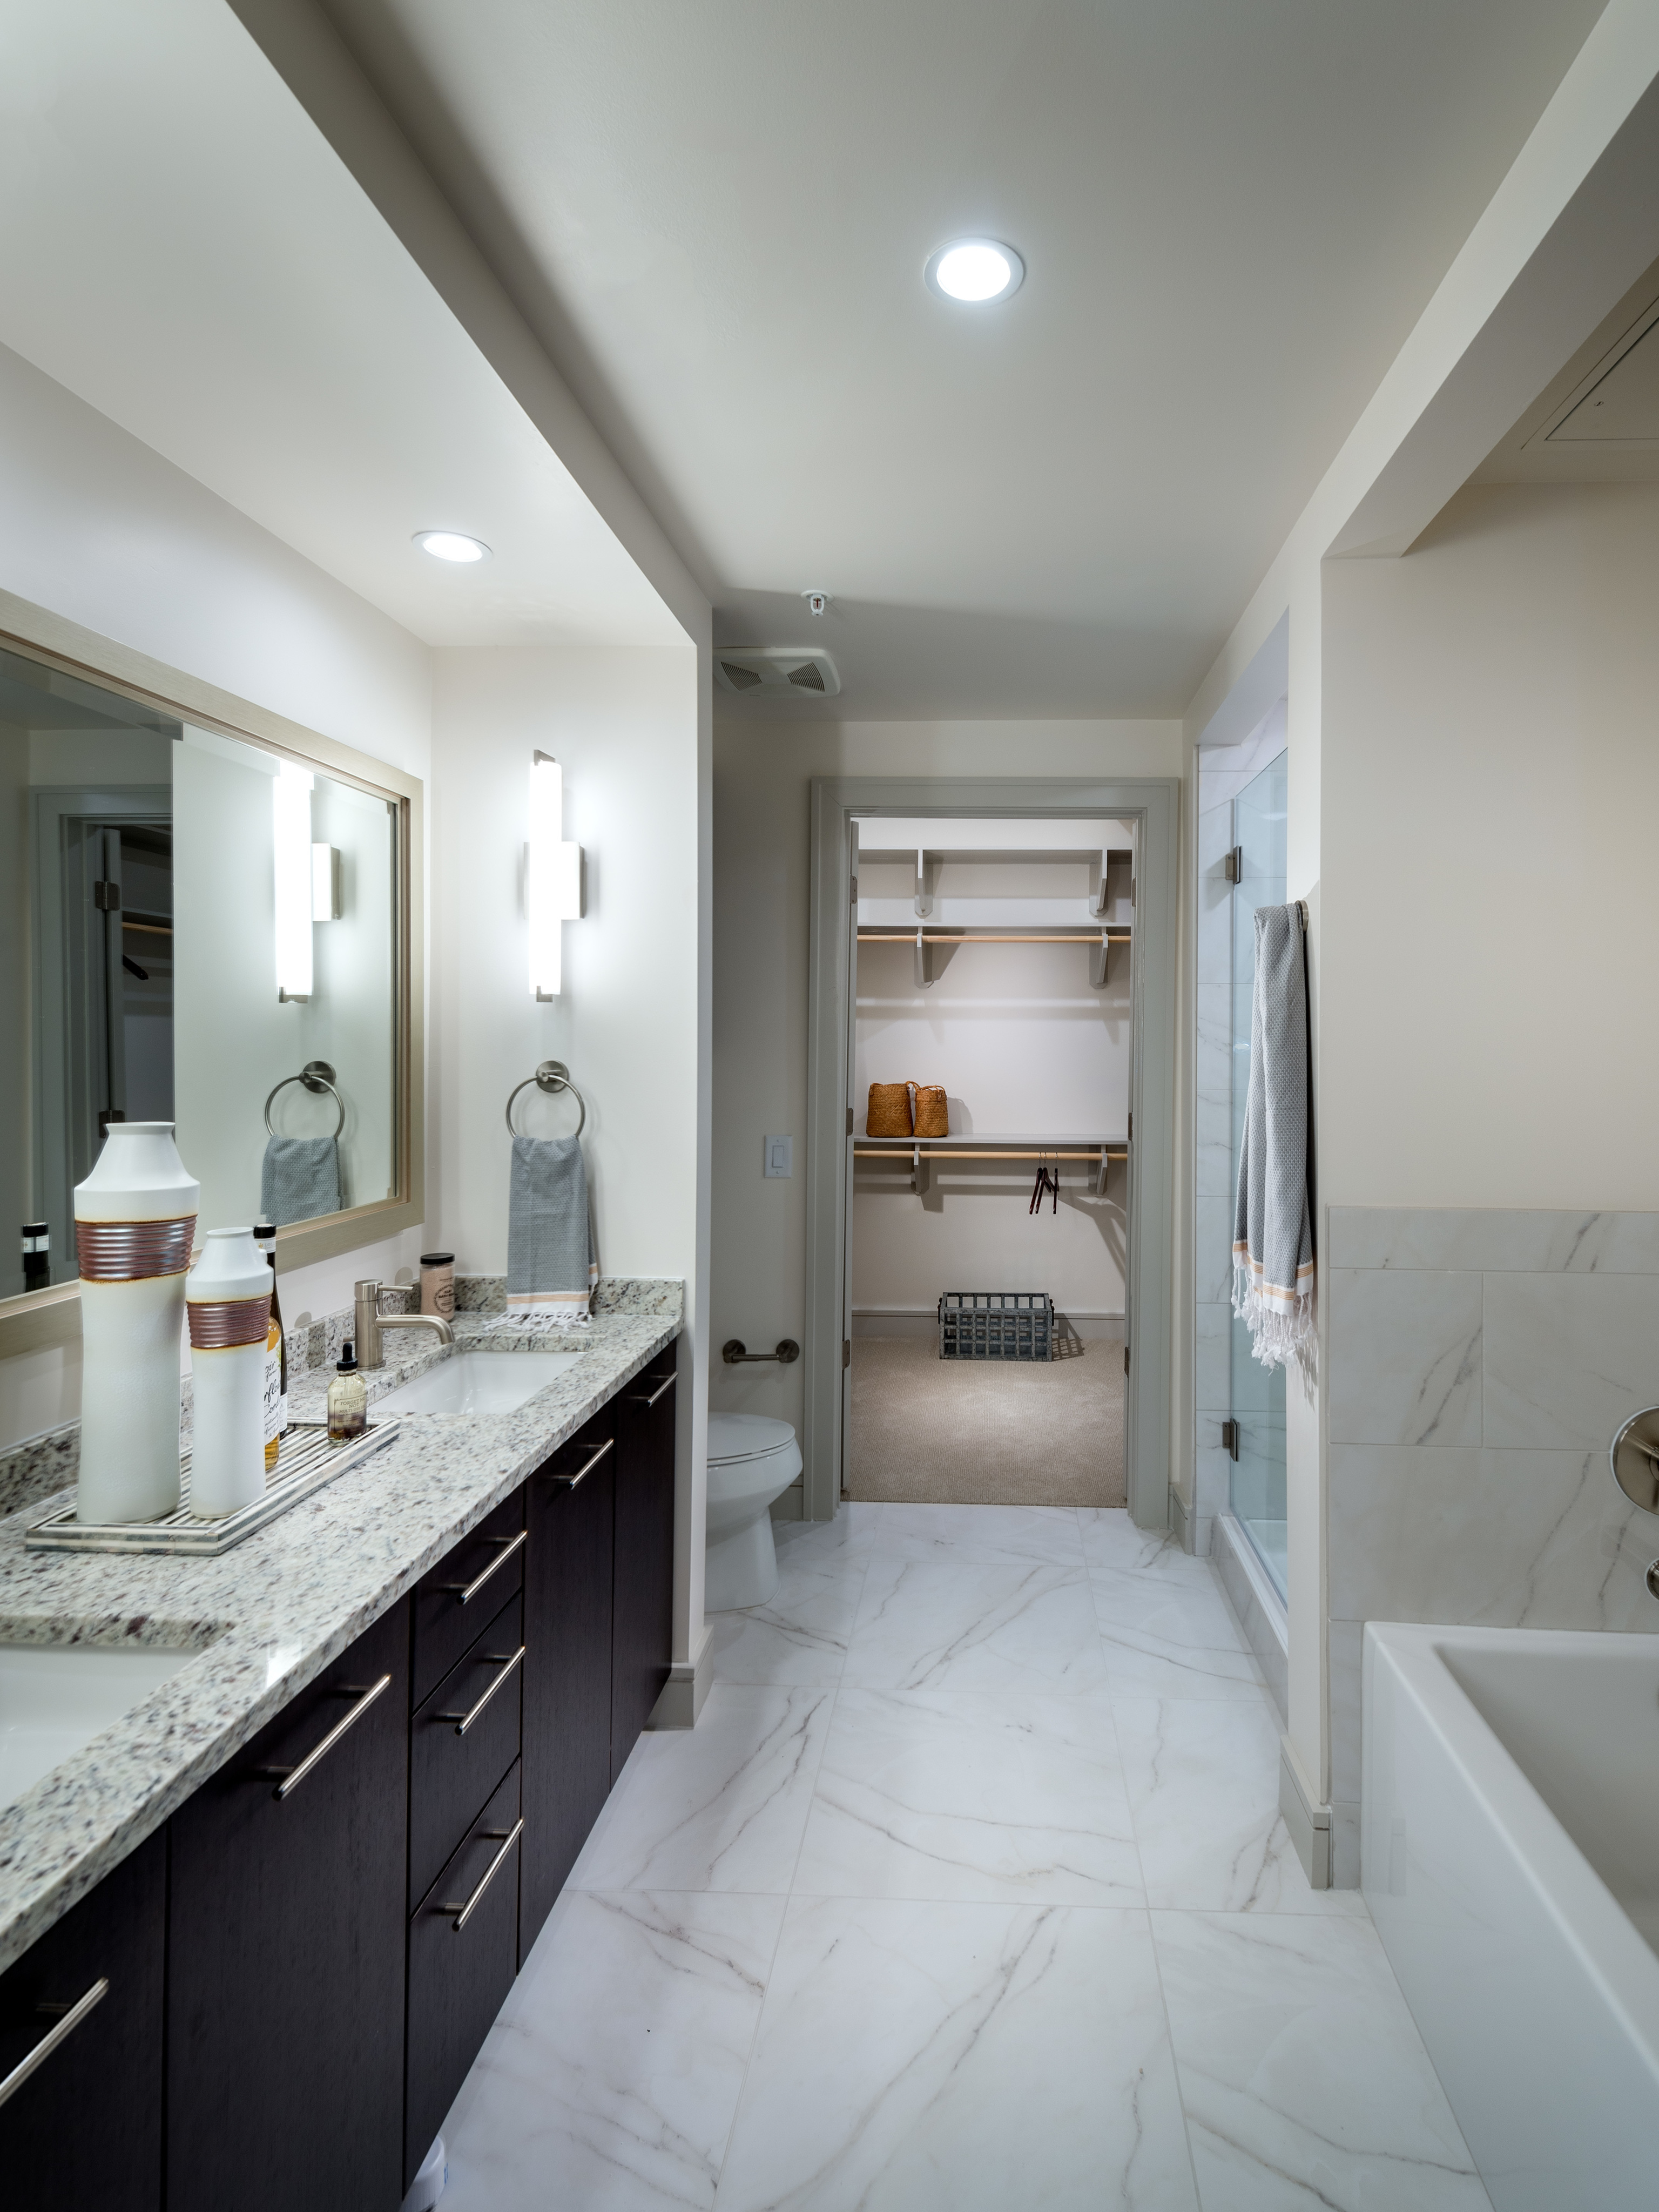 Image of Spa-Inspired Bathrooms with Frameless Glass Showers and Oversized Soaking Tubs* for Hanover Midtown